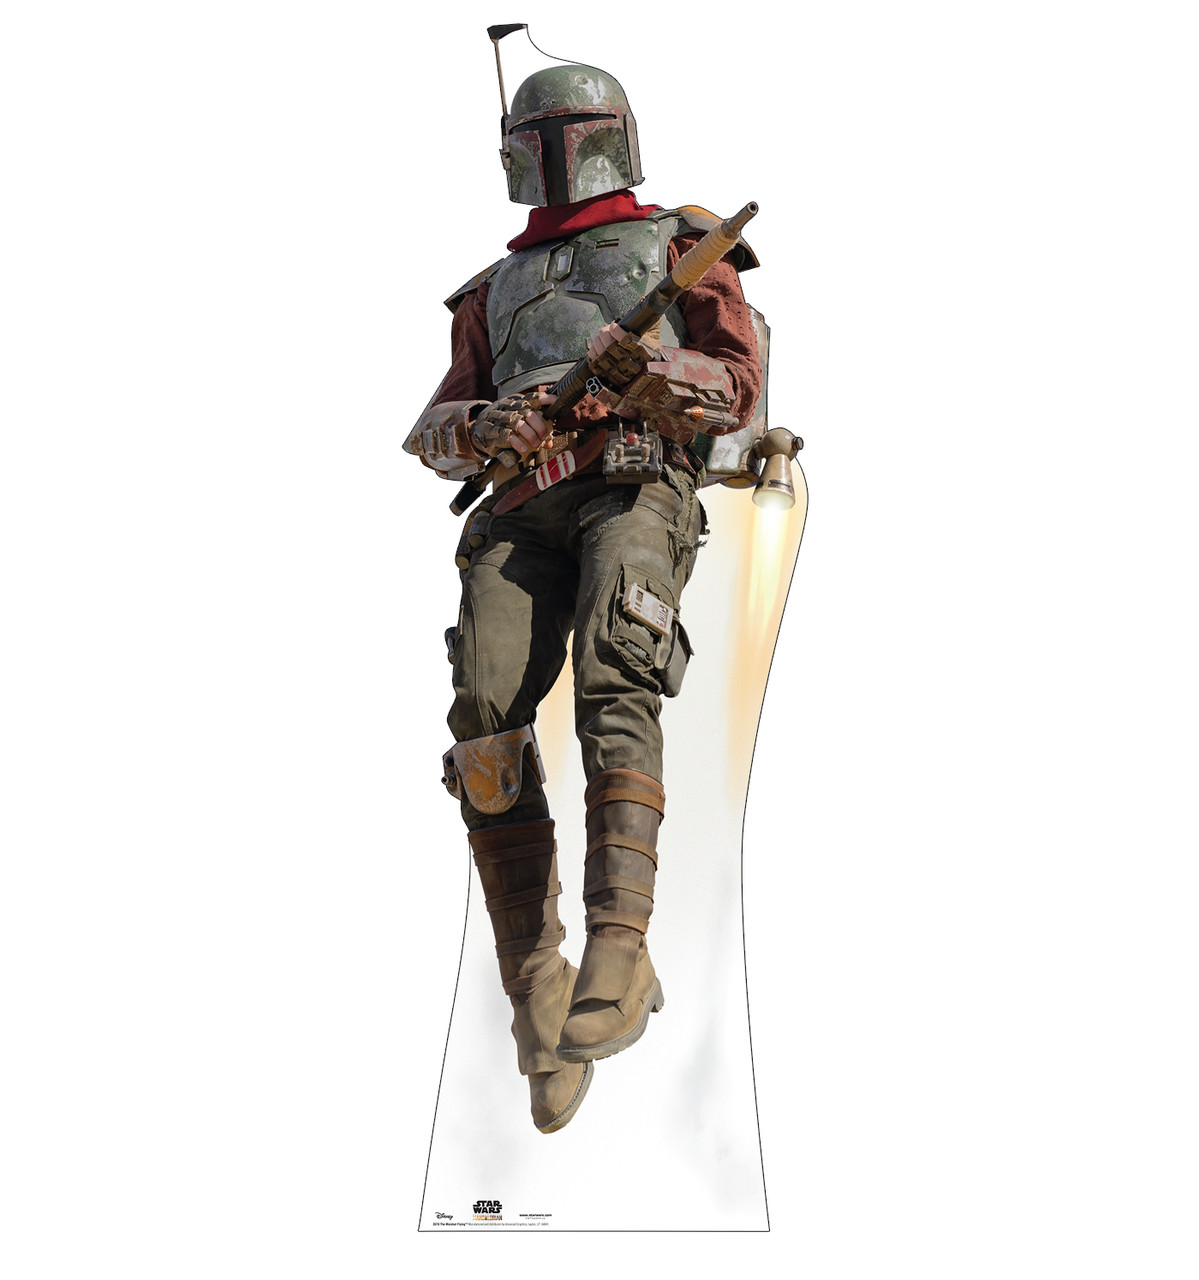 Life-size cardboard standee of The Marshal Flying.